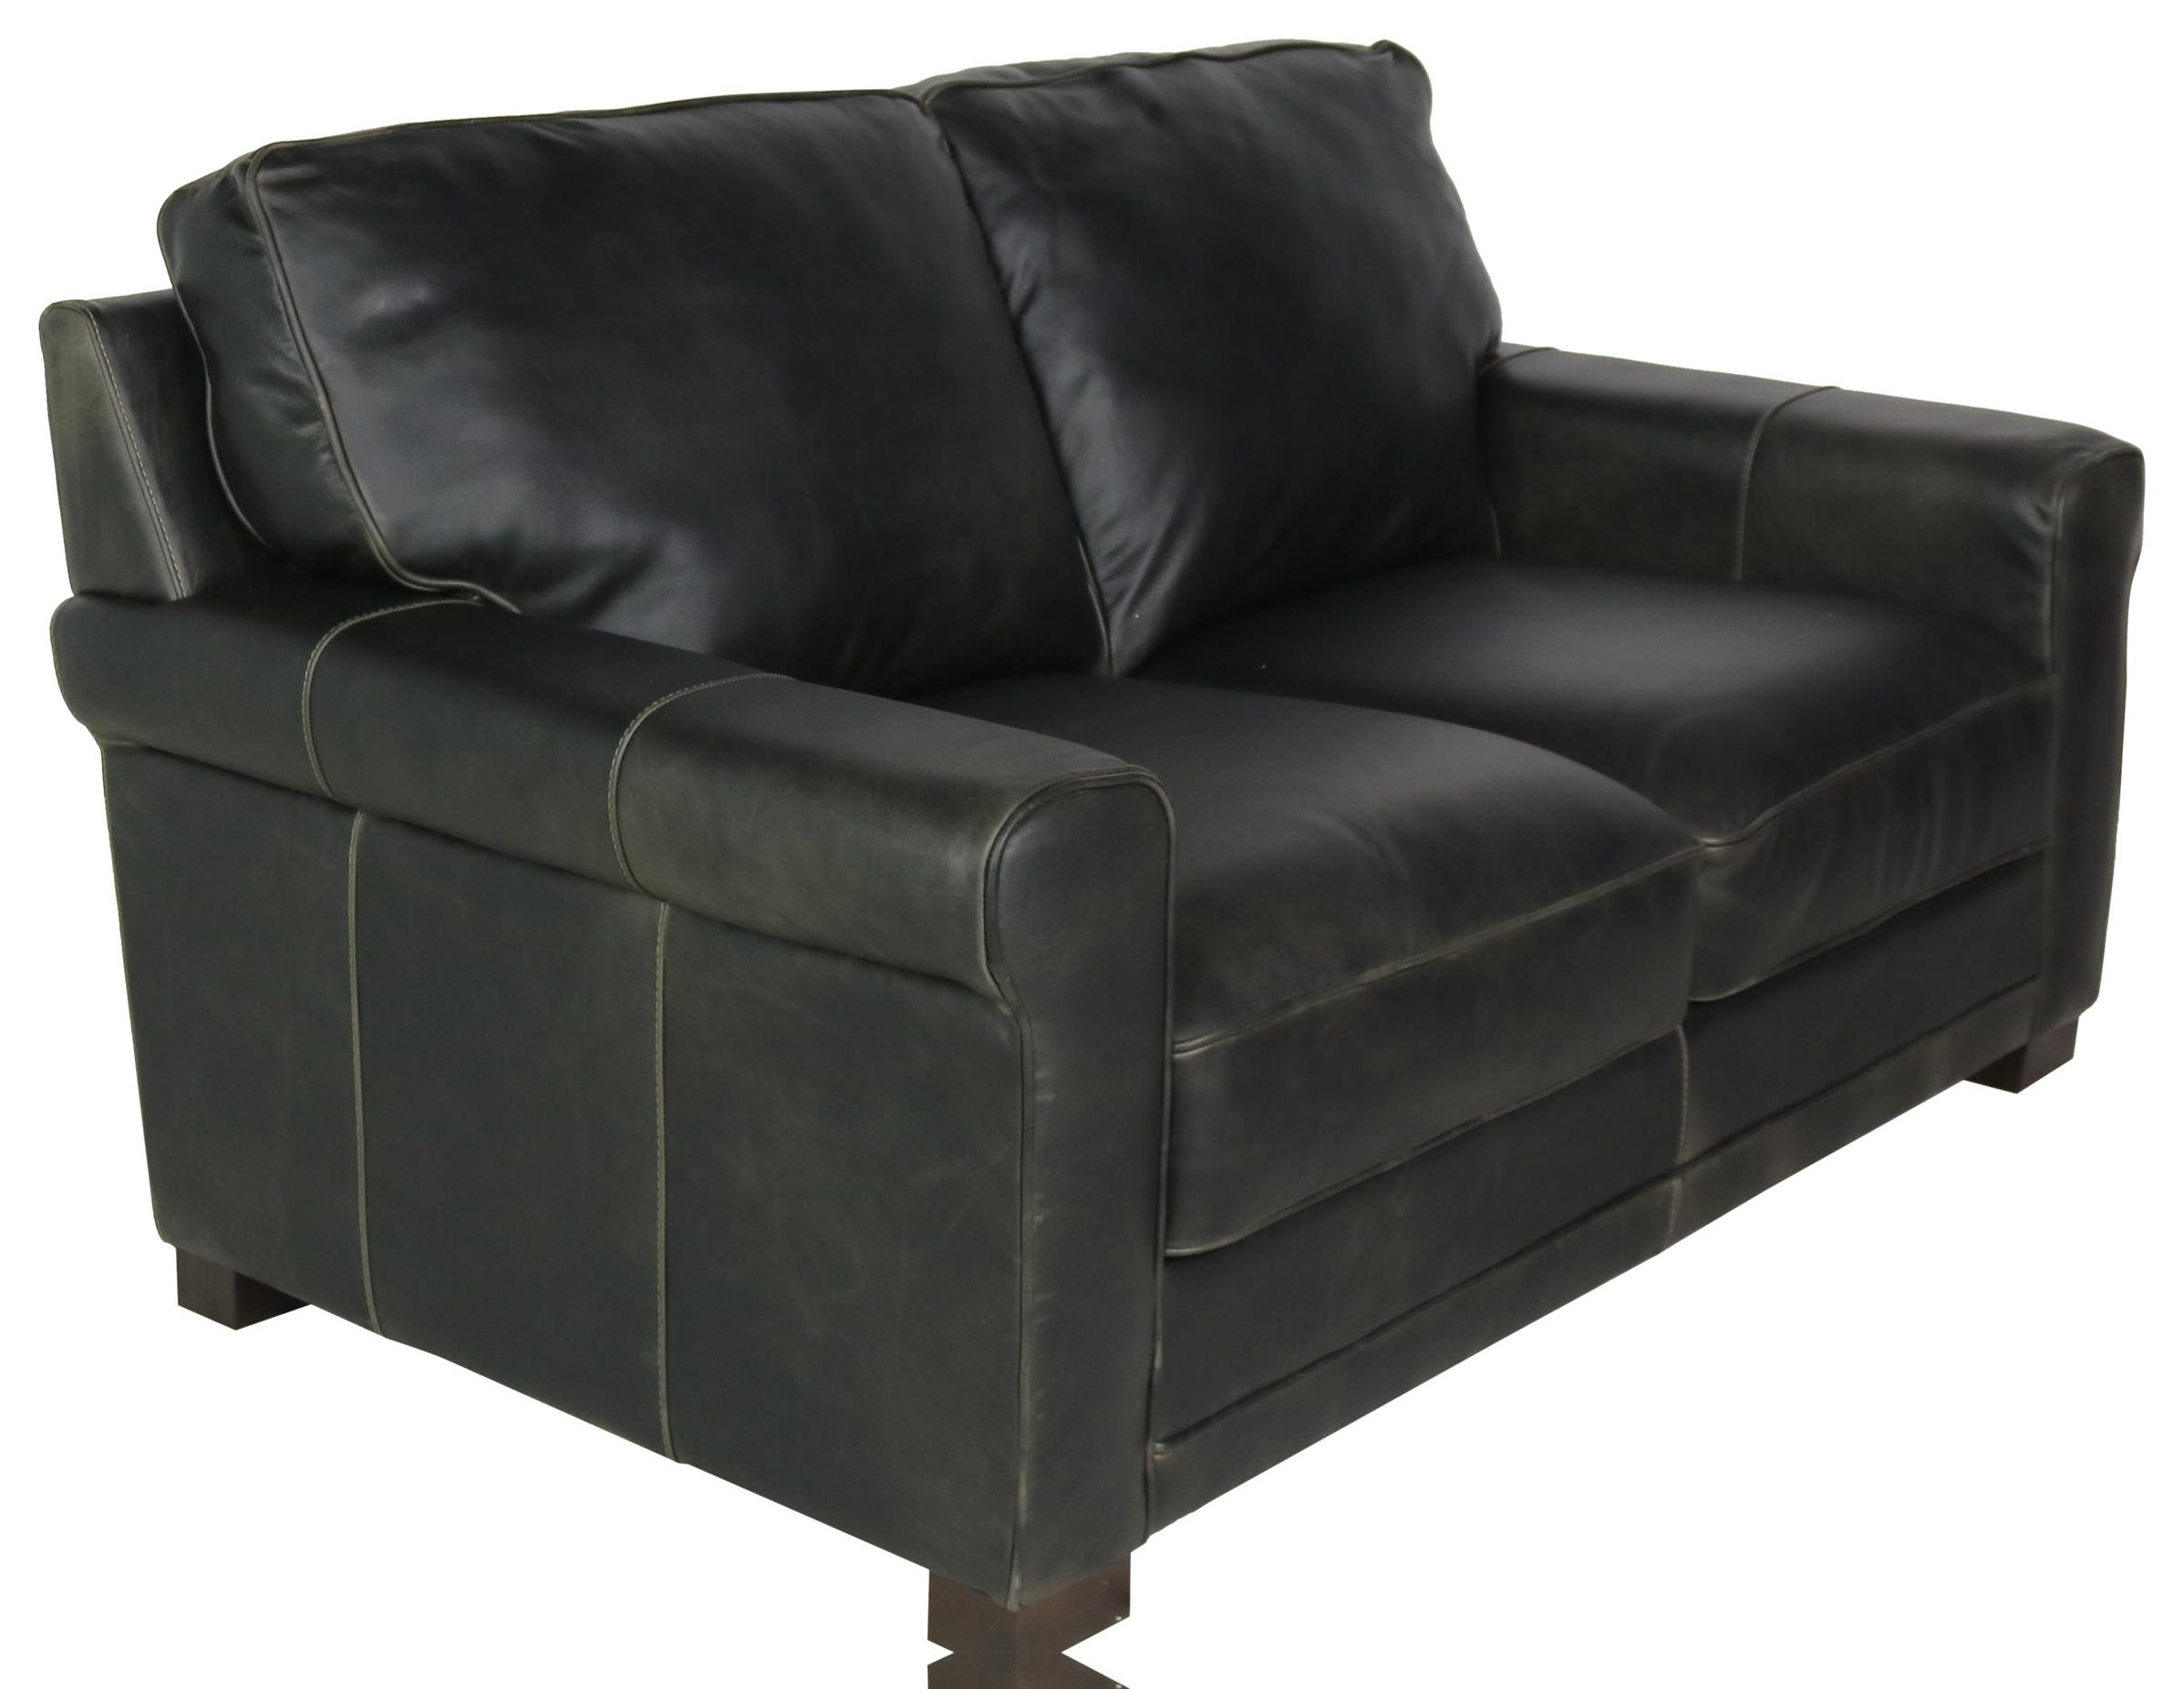 Gio Collection Italian Leather Loveseat by Giovanni Leather at Sprintz Furniture